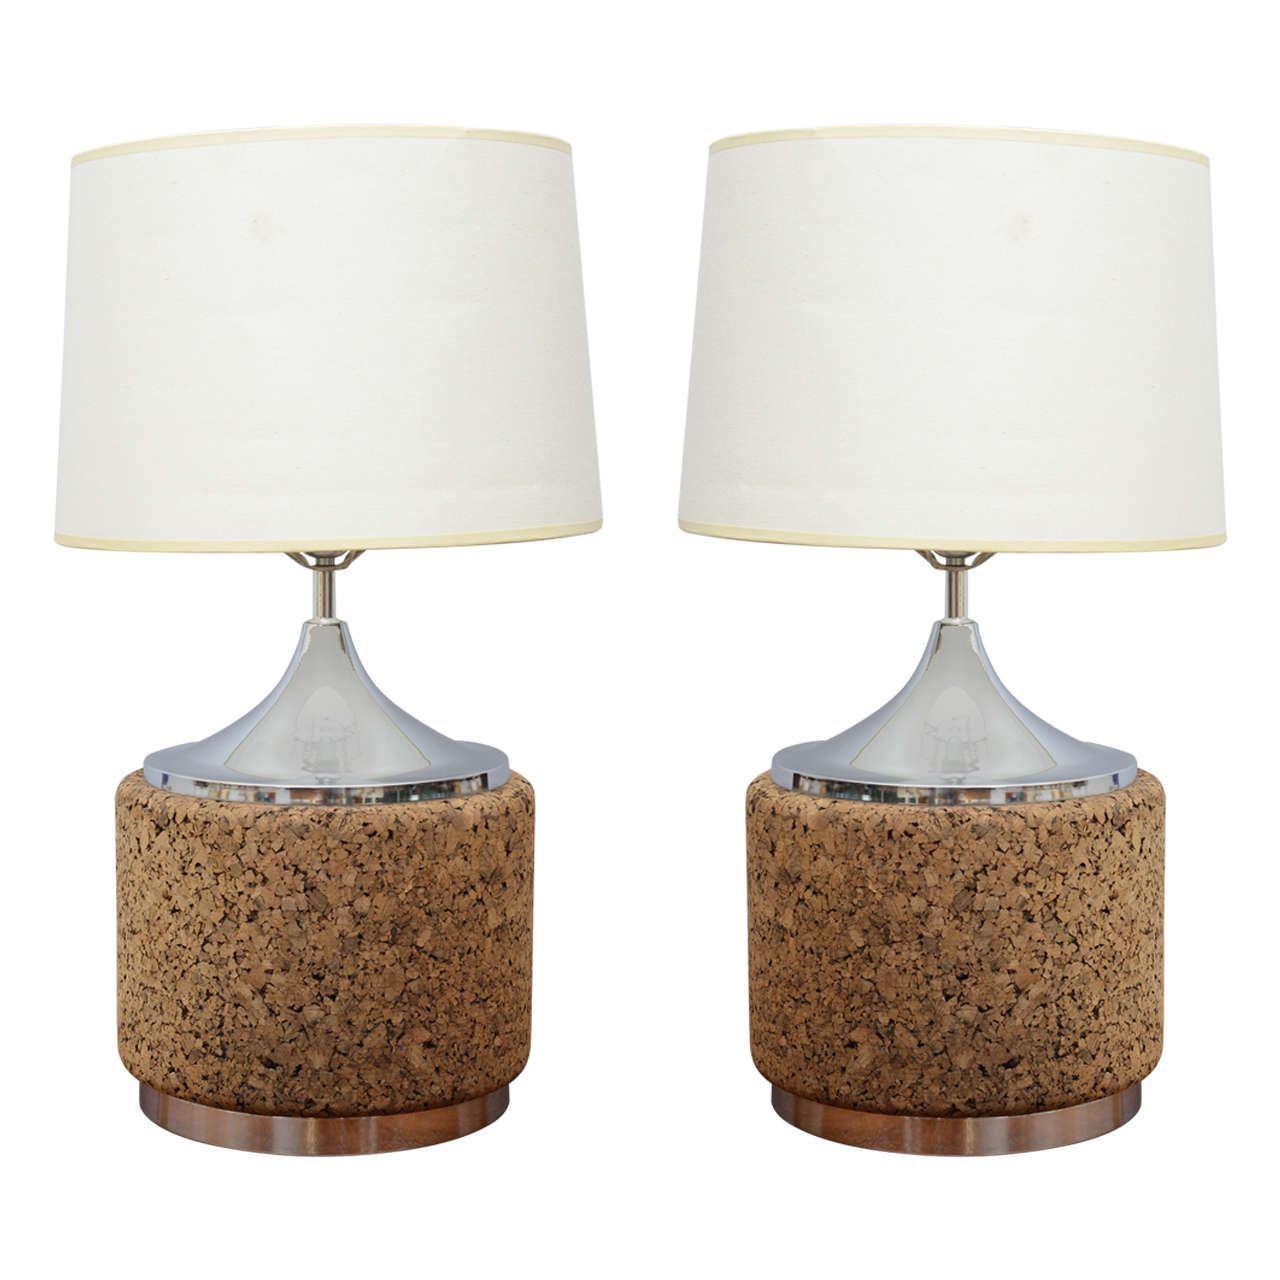 Beautiful pair of cork and chrome table lamps 1970s usa for sale at beautiful pair of cork and chrome table lamps 1970s usa for sale aloadofball Images